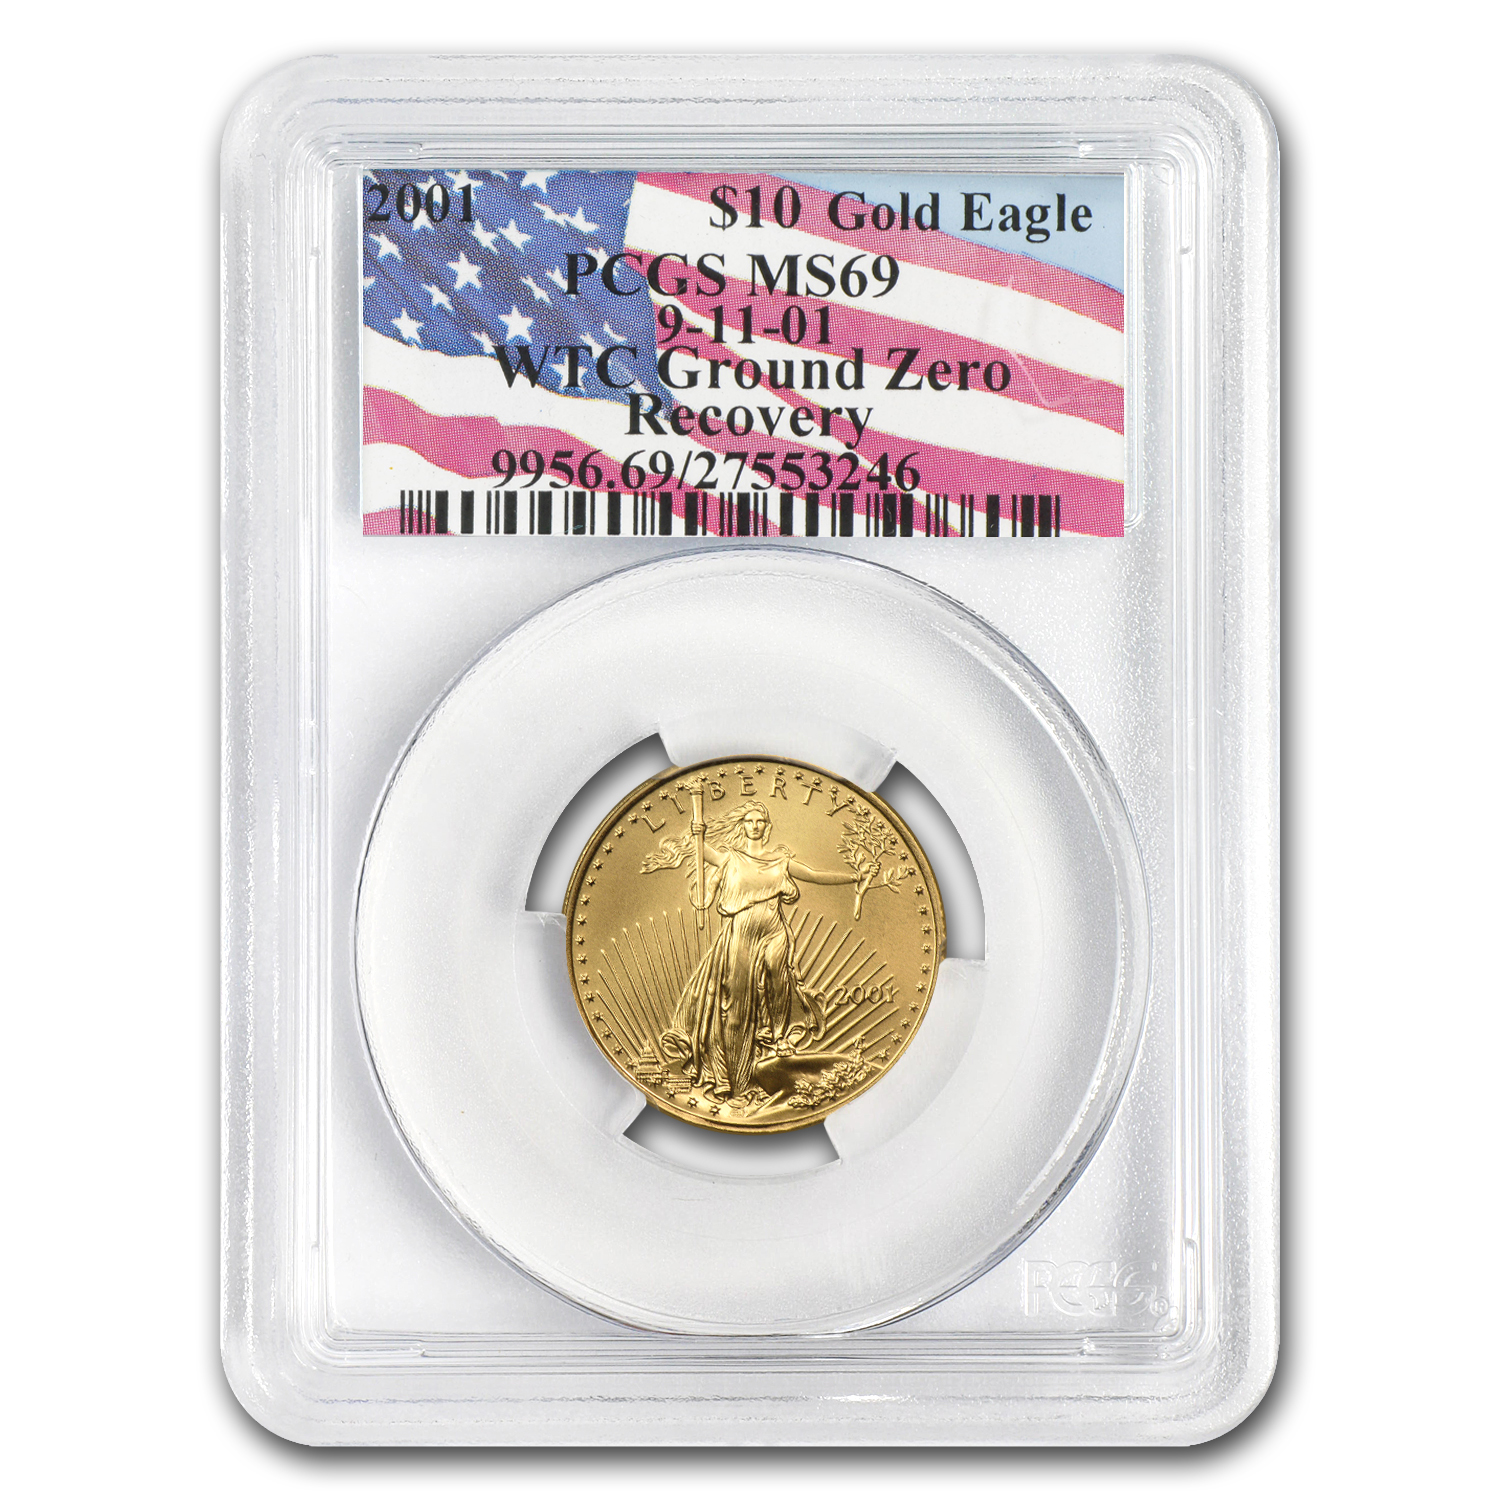 2001 1/4 oz Gold American Eagle MS-69 PCGS (World Trade Center)